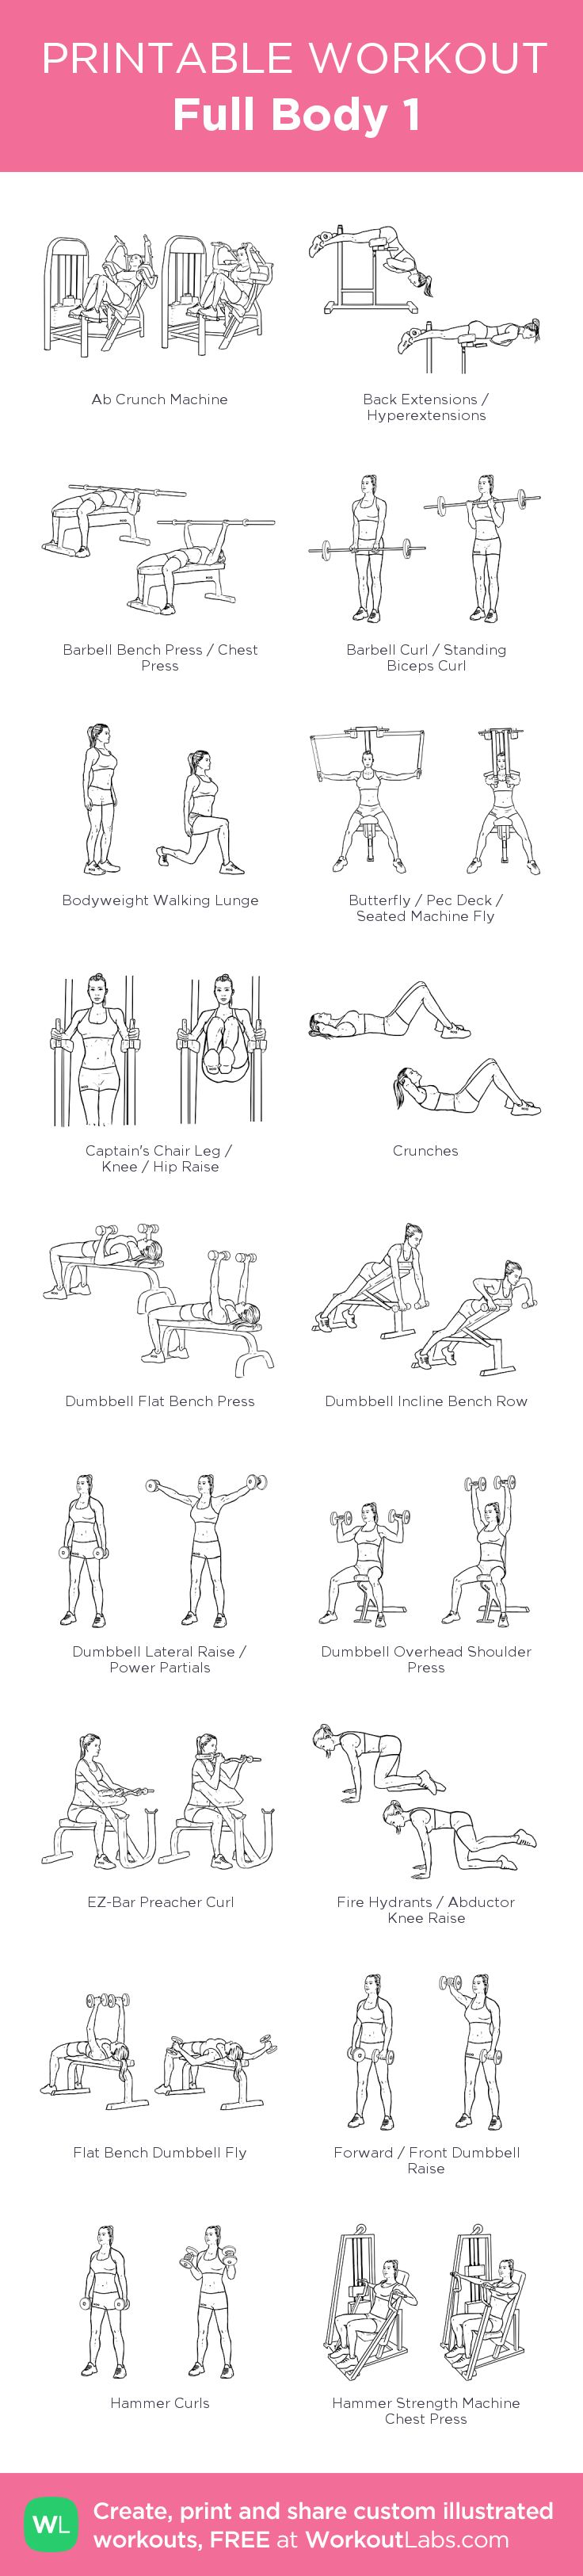 Full Body 1:my visual workout created at WorkoutLabs.com • Click through to customize and download as a FREE PDF! #customworkout